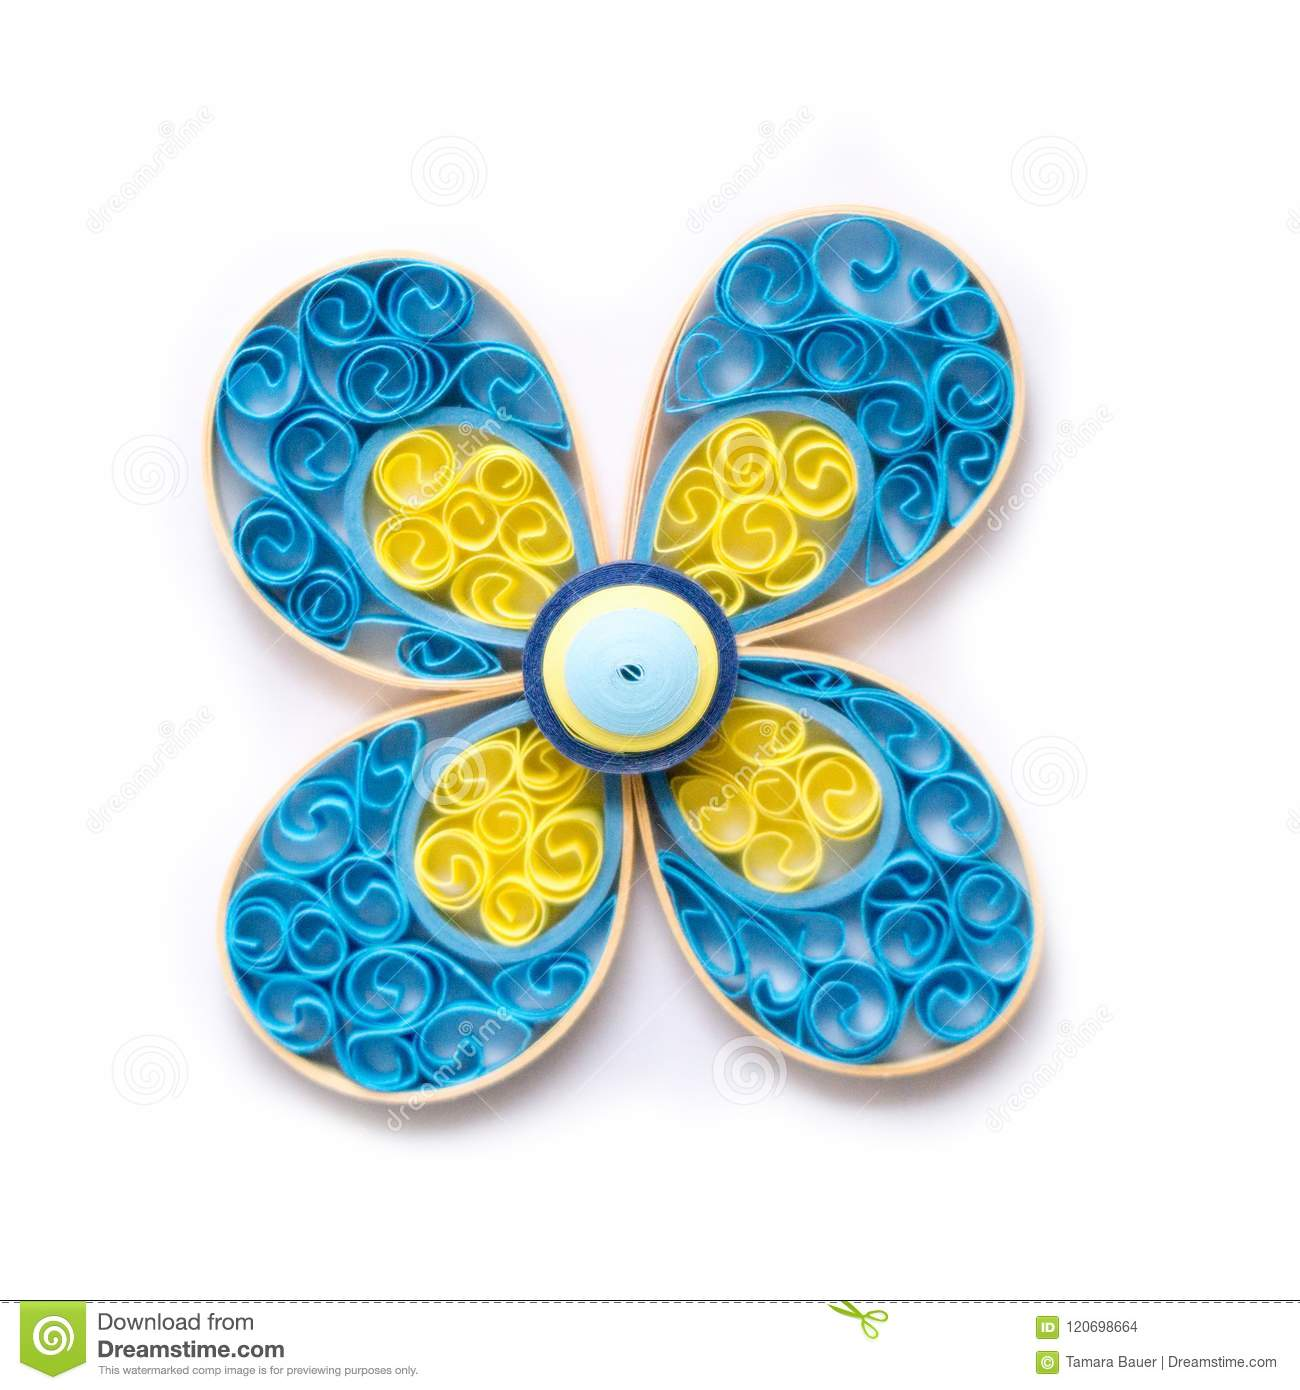 Quilling Flower With Paper Coils Stock Photo Image Of Decorate